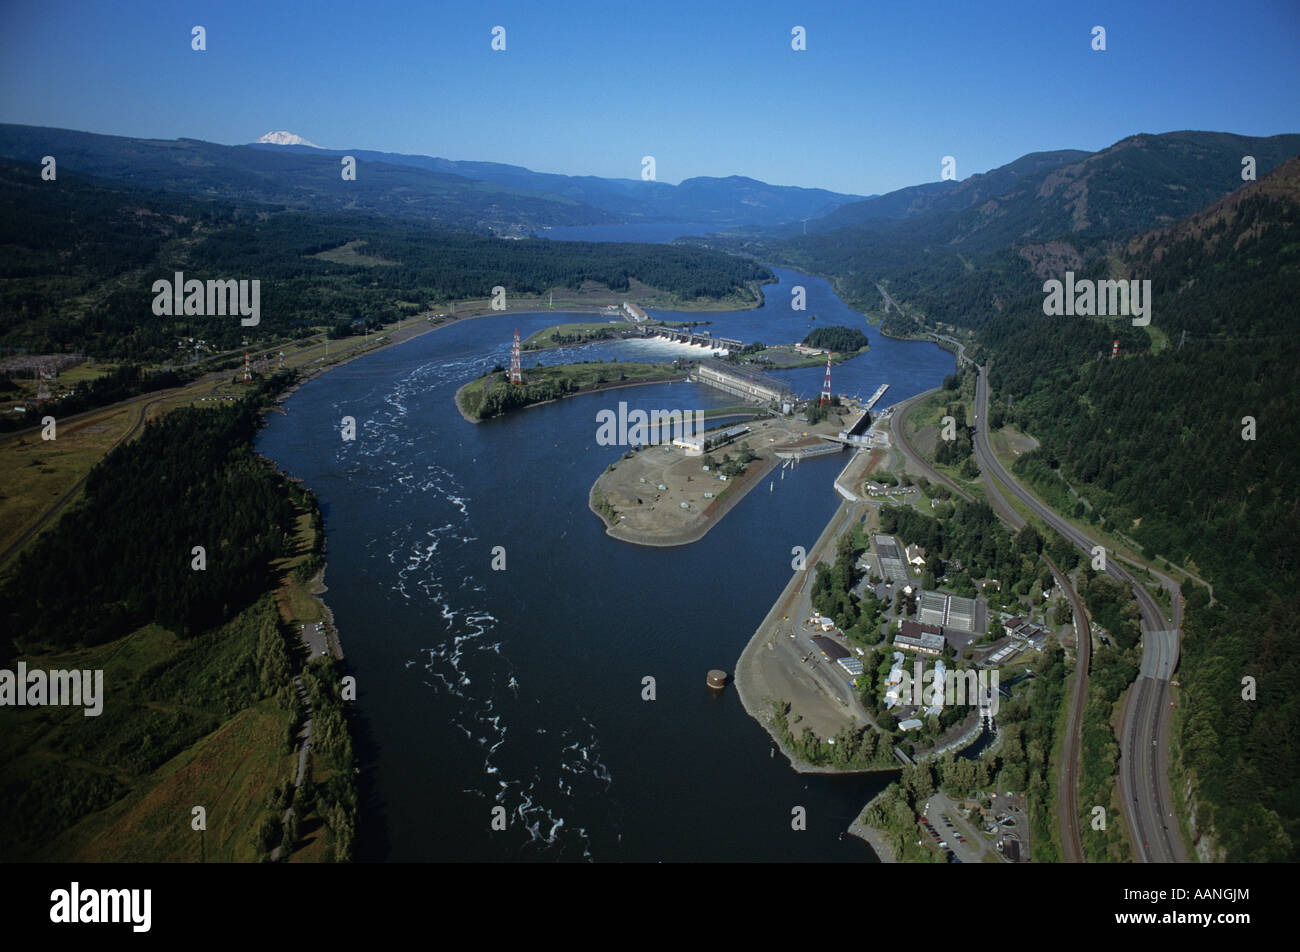 Bonneville dam stock photos bonneville dam stock images for Bonneville dam fish counts 2017